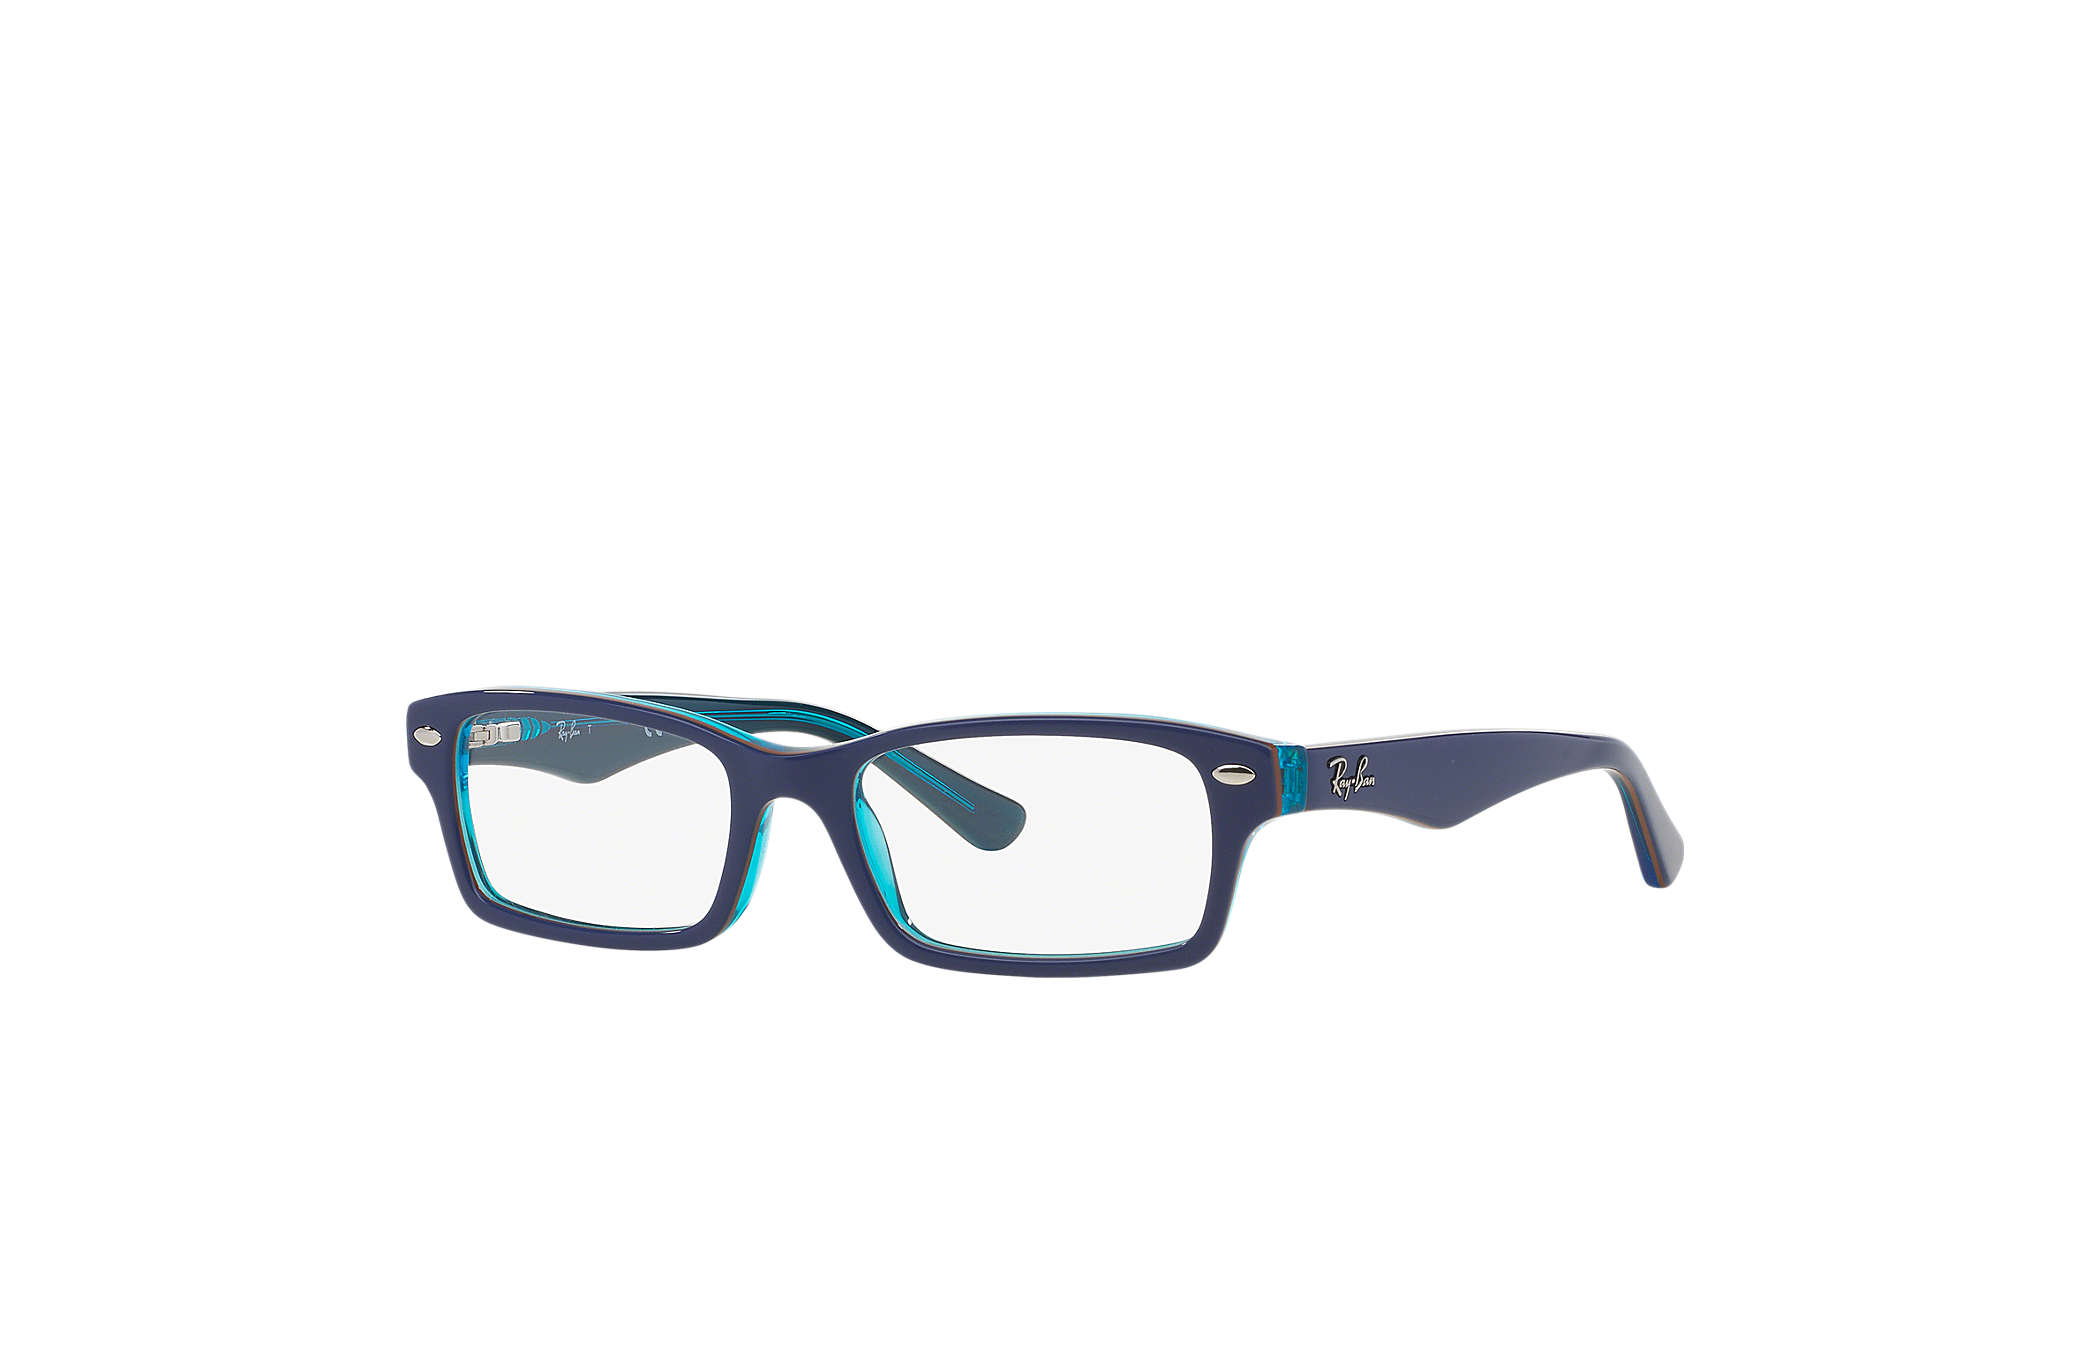 light ip anti yellow and archgon com glasses blue ht y black gl frame walmart